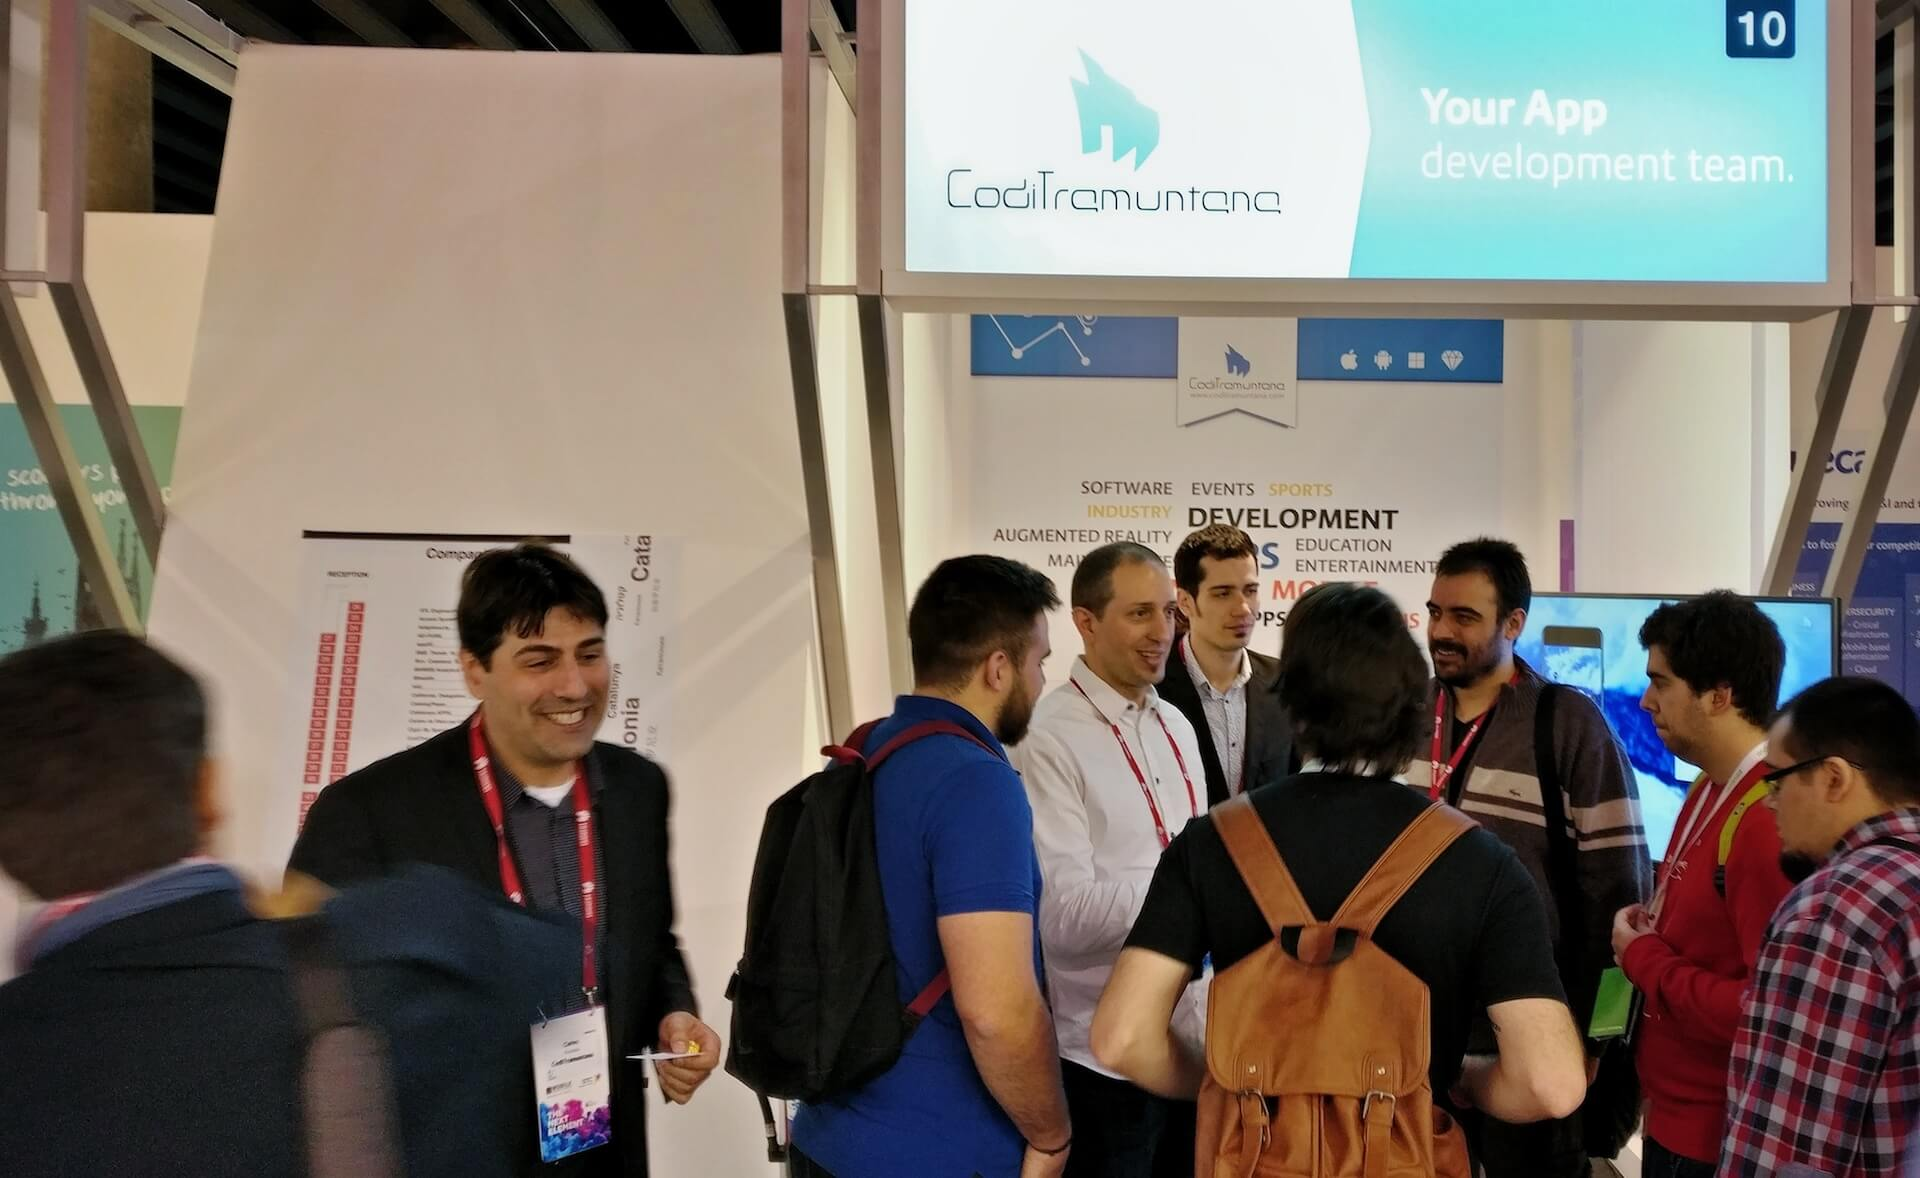 9 persons visiting the CodiTramuntana stand at MWC2017 of Barcelona